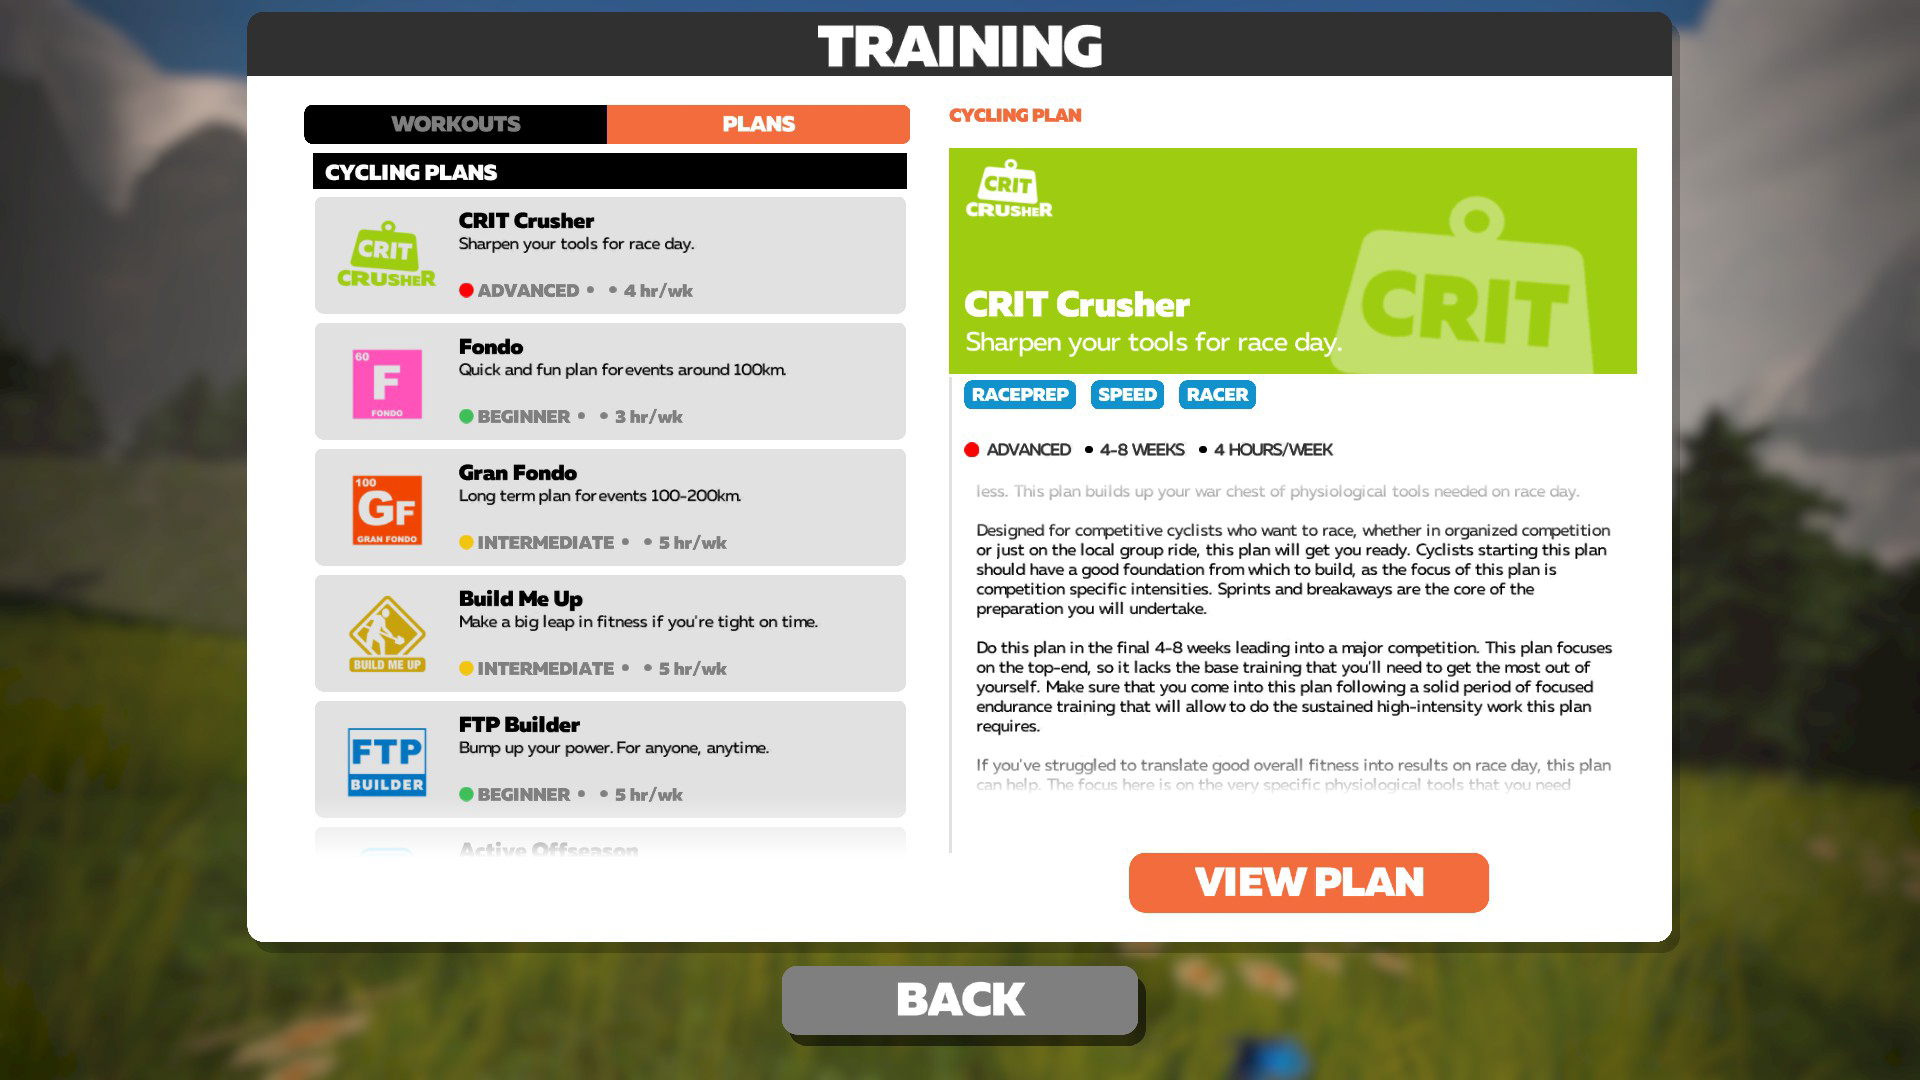 Training plans are available for any goal you are working towards